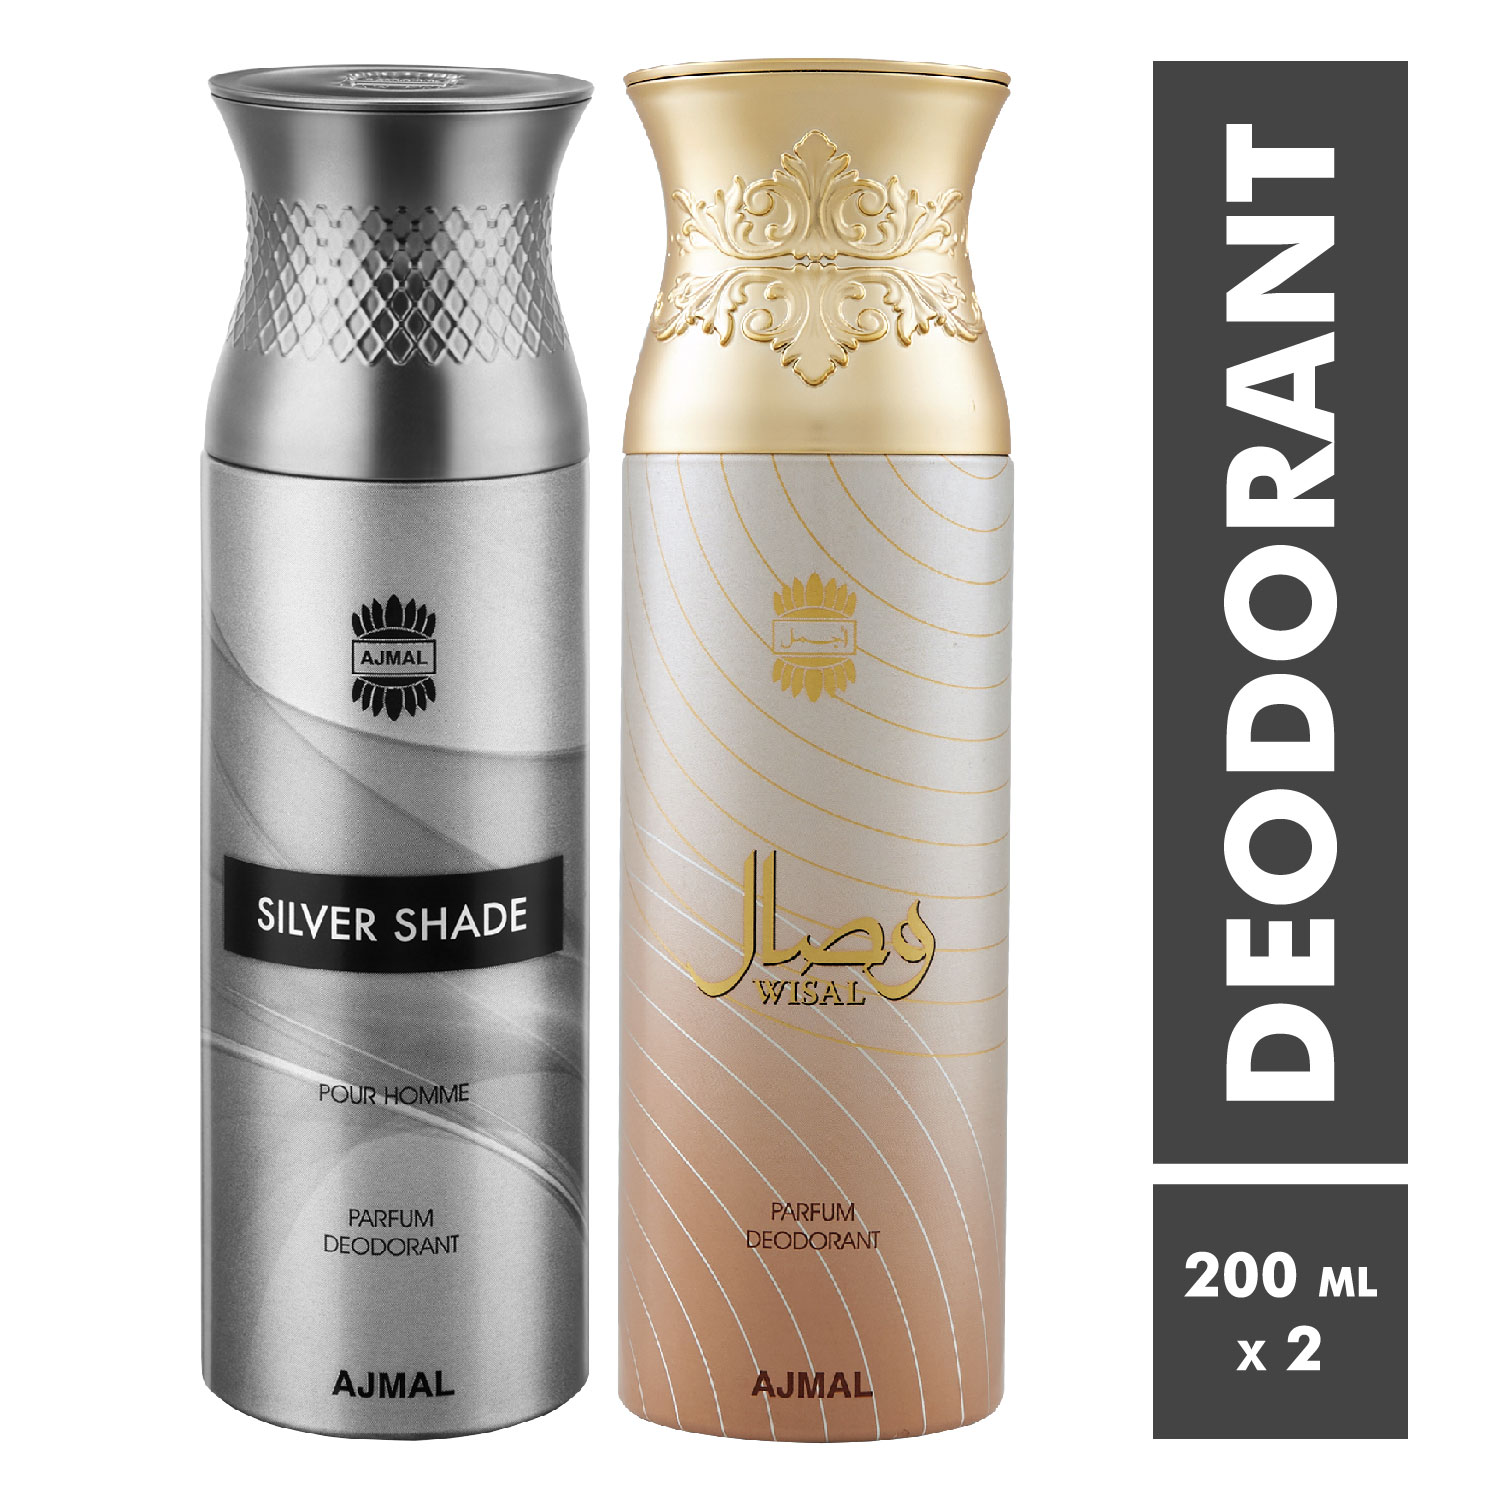 Ajmal | Silver Shade and Wisal Deodorant Spray - Pack of 2